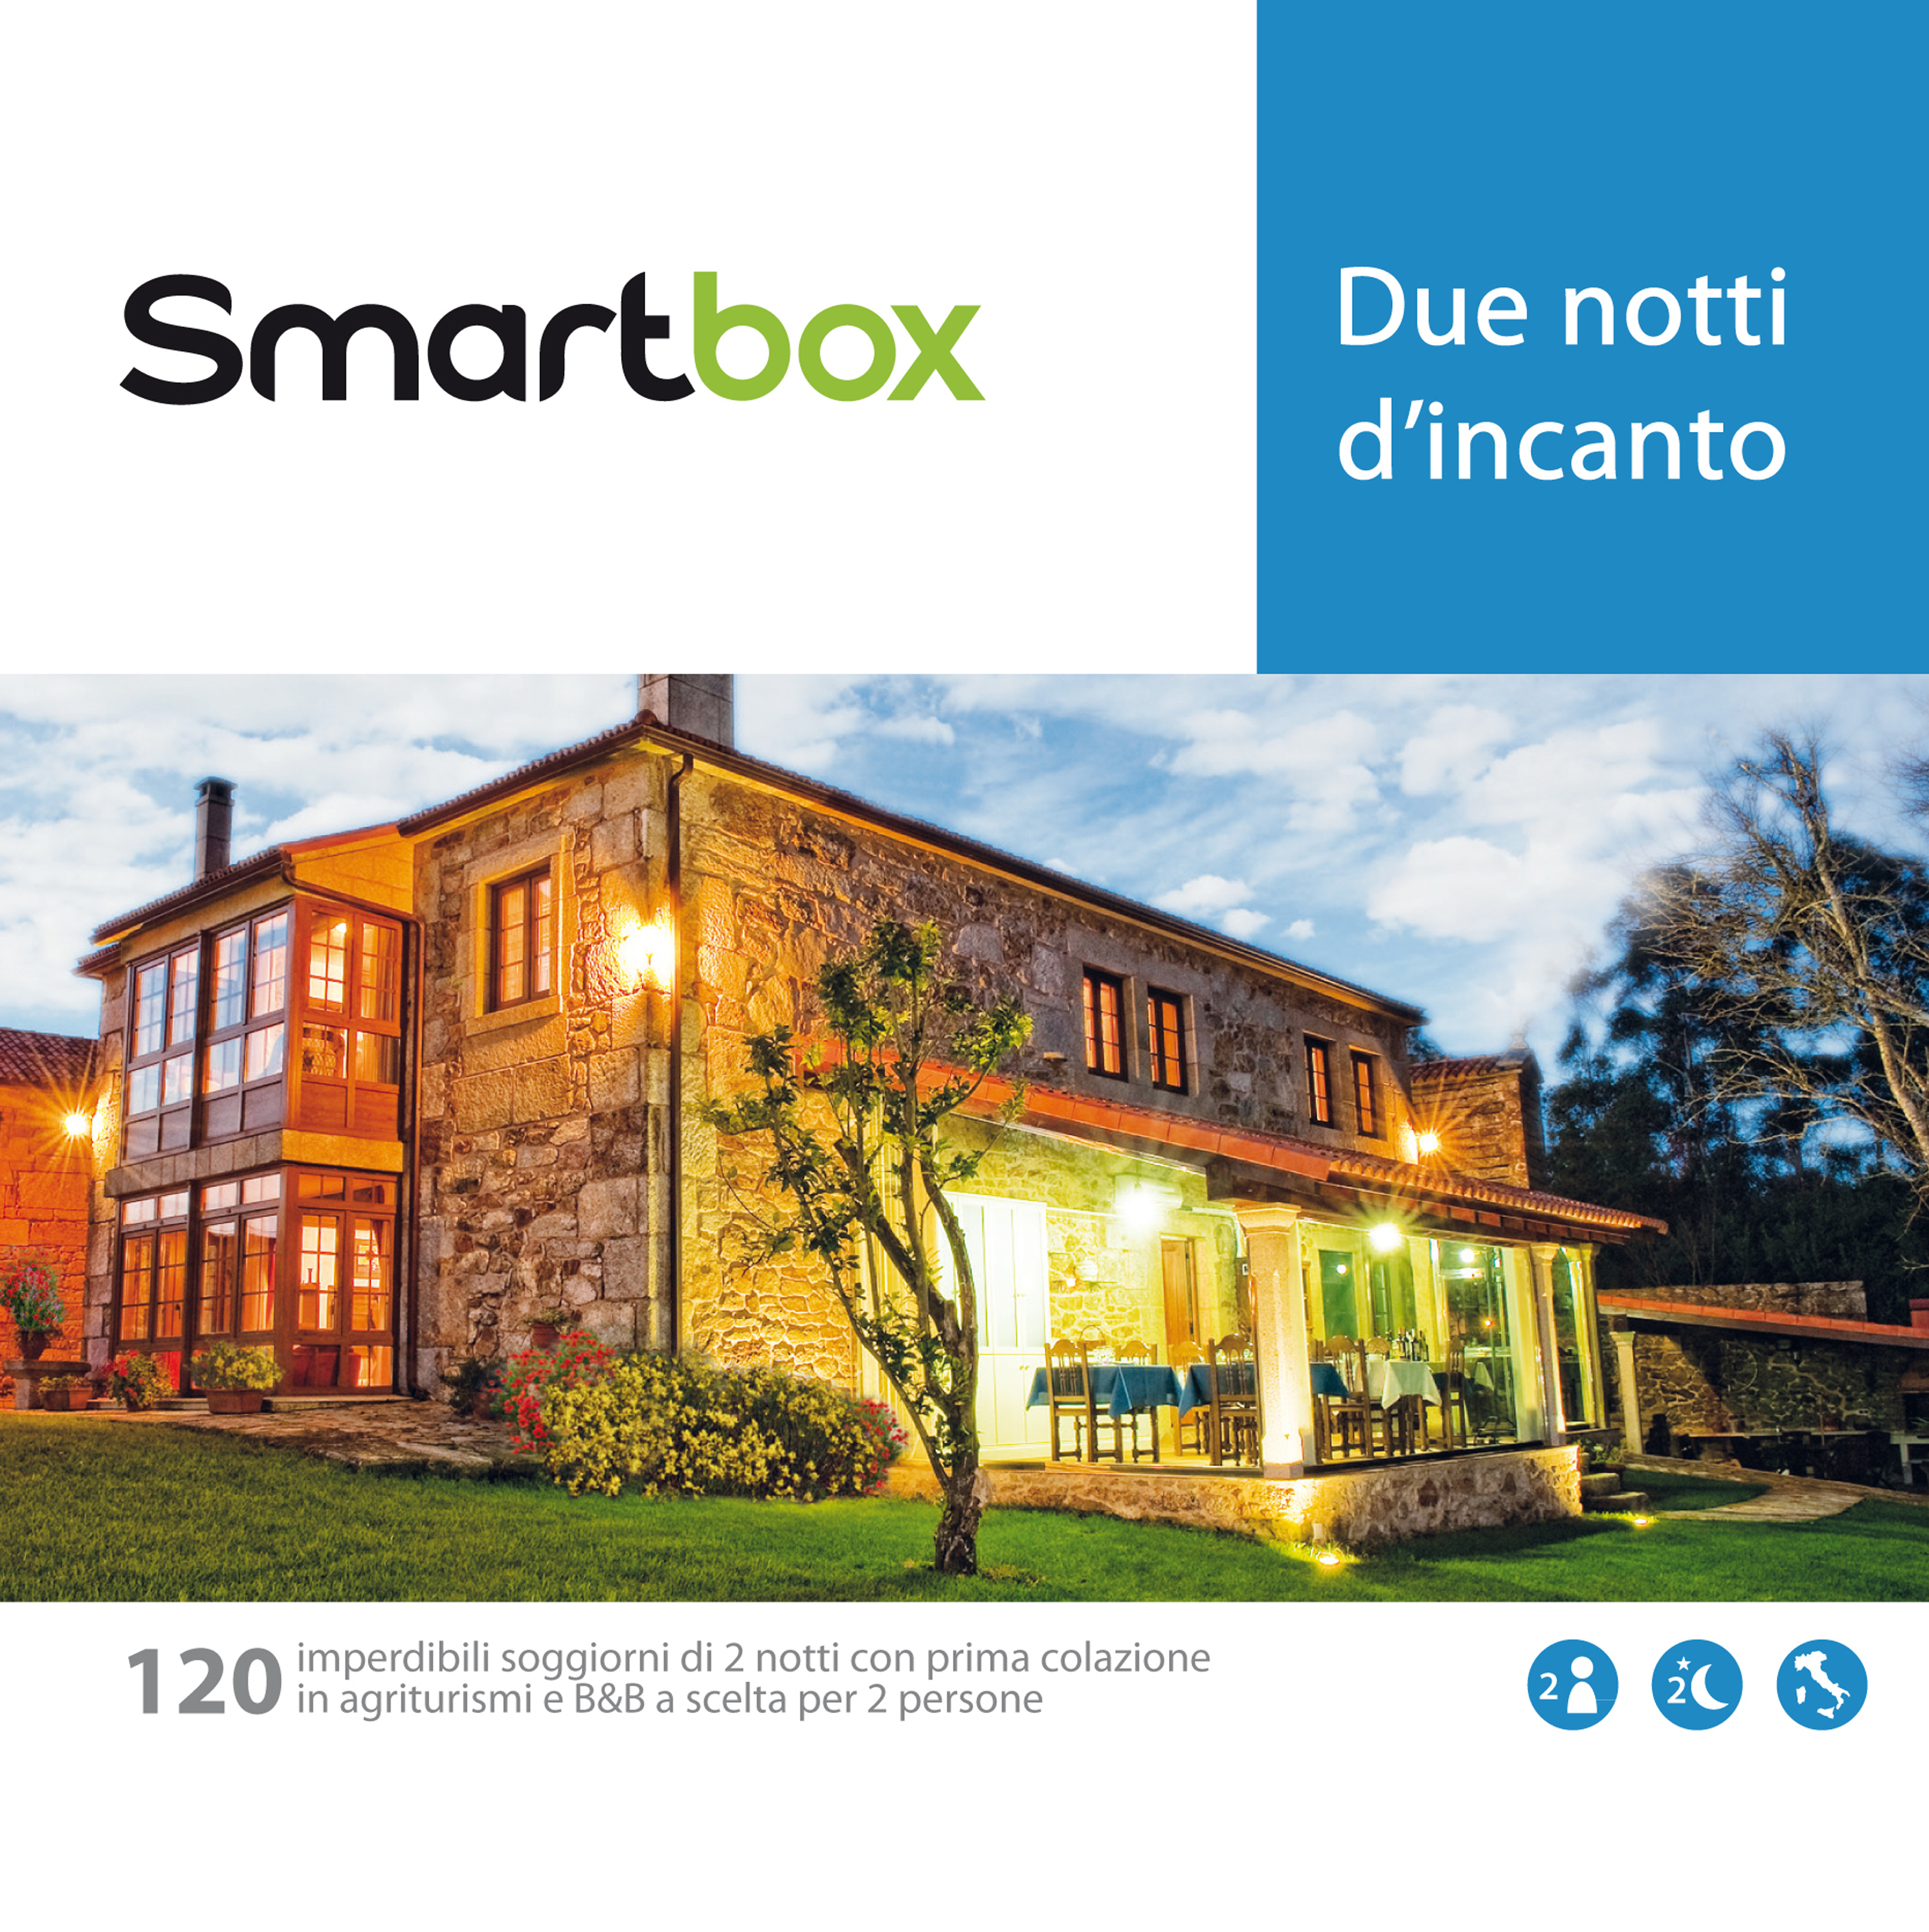 Smartbox News  Il Blog di Smartbox